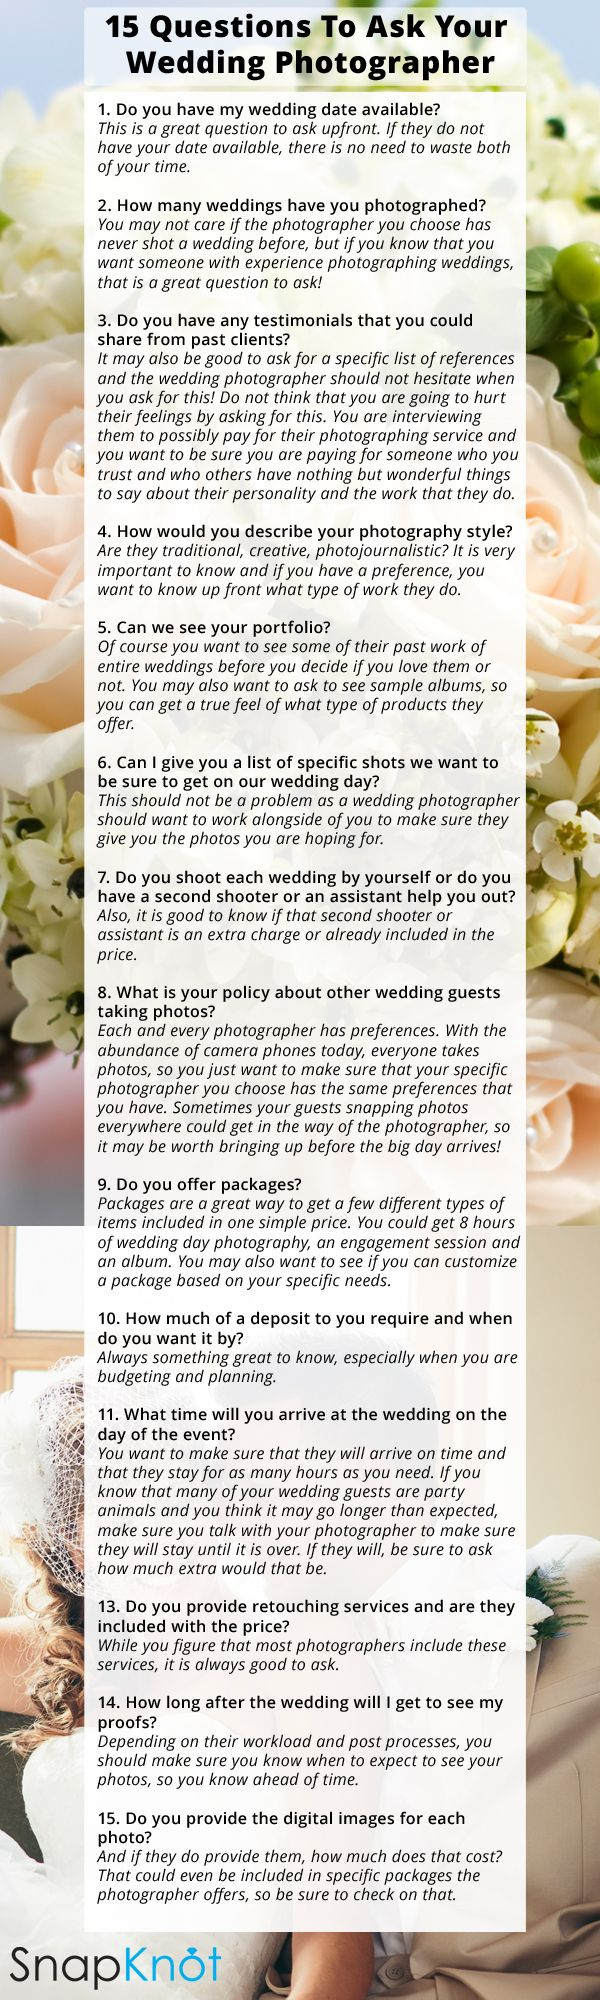 15 Questions To Ask A Wedding Photographer Before You Book Them Tips And